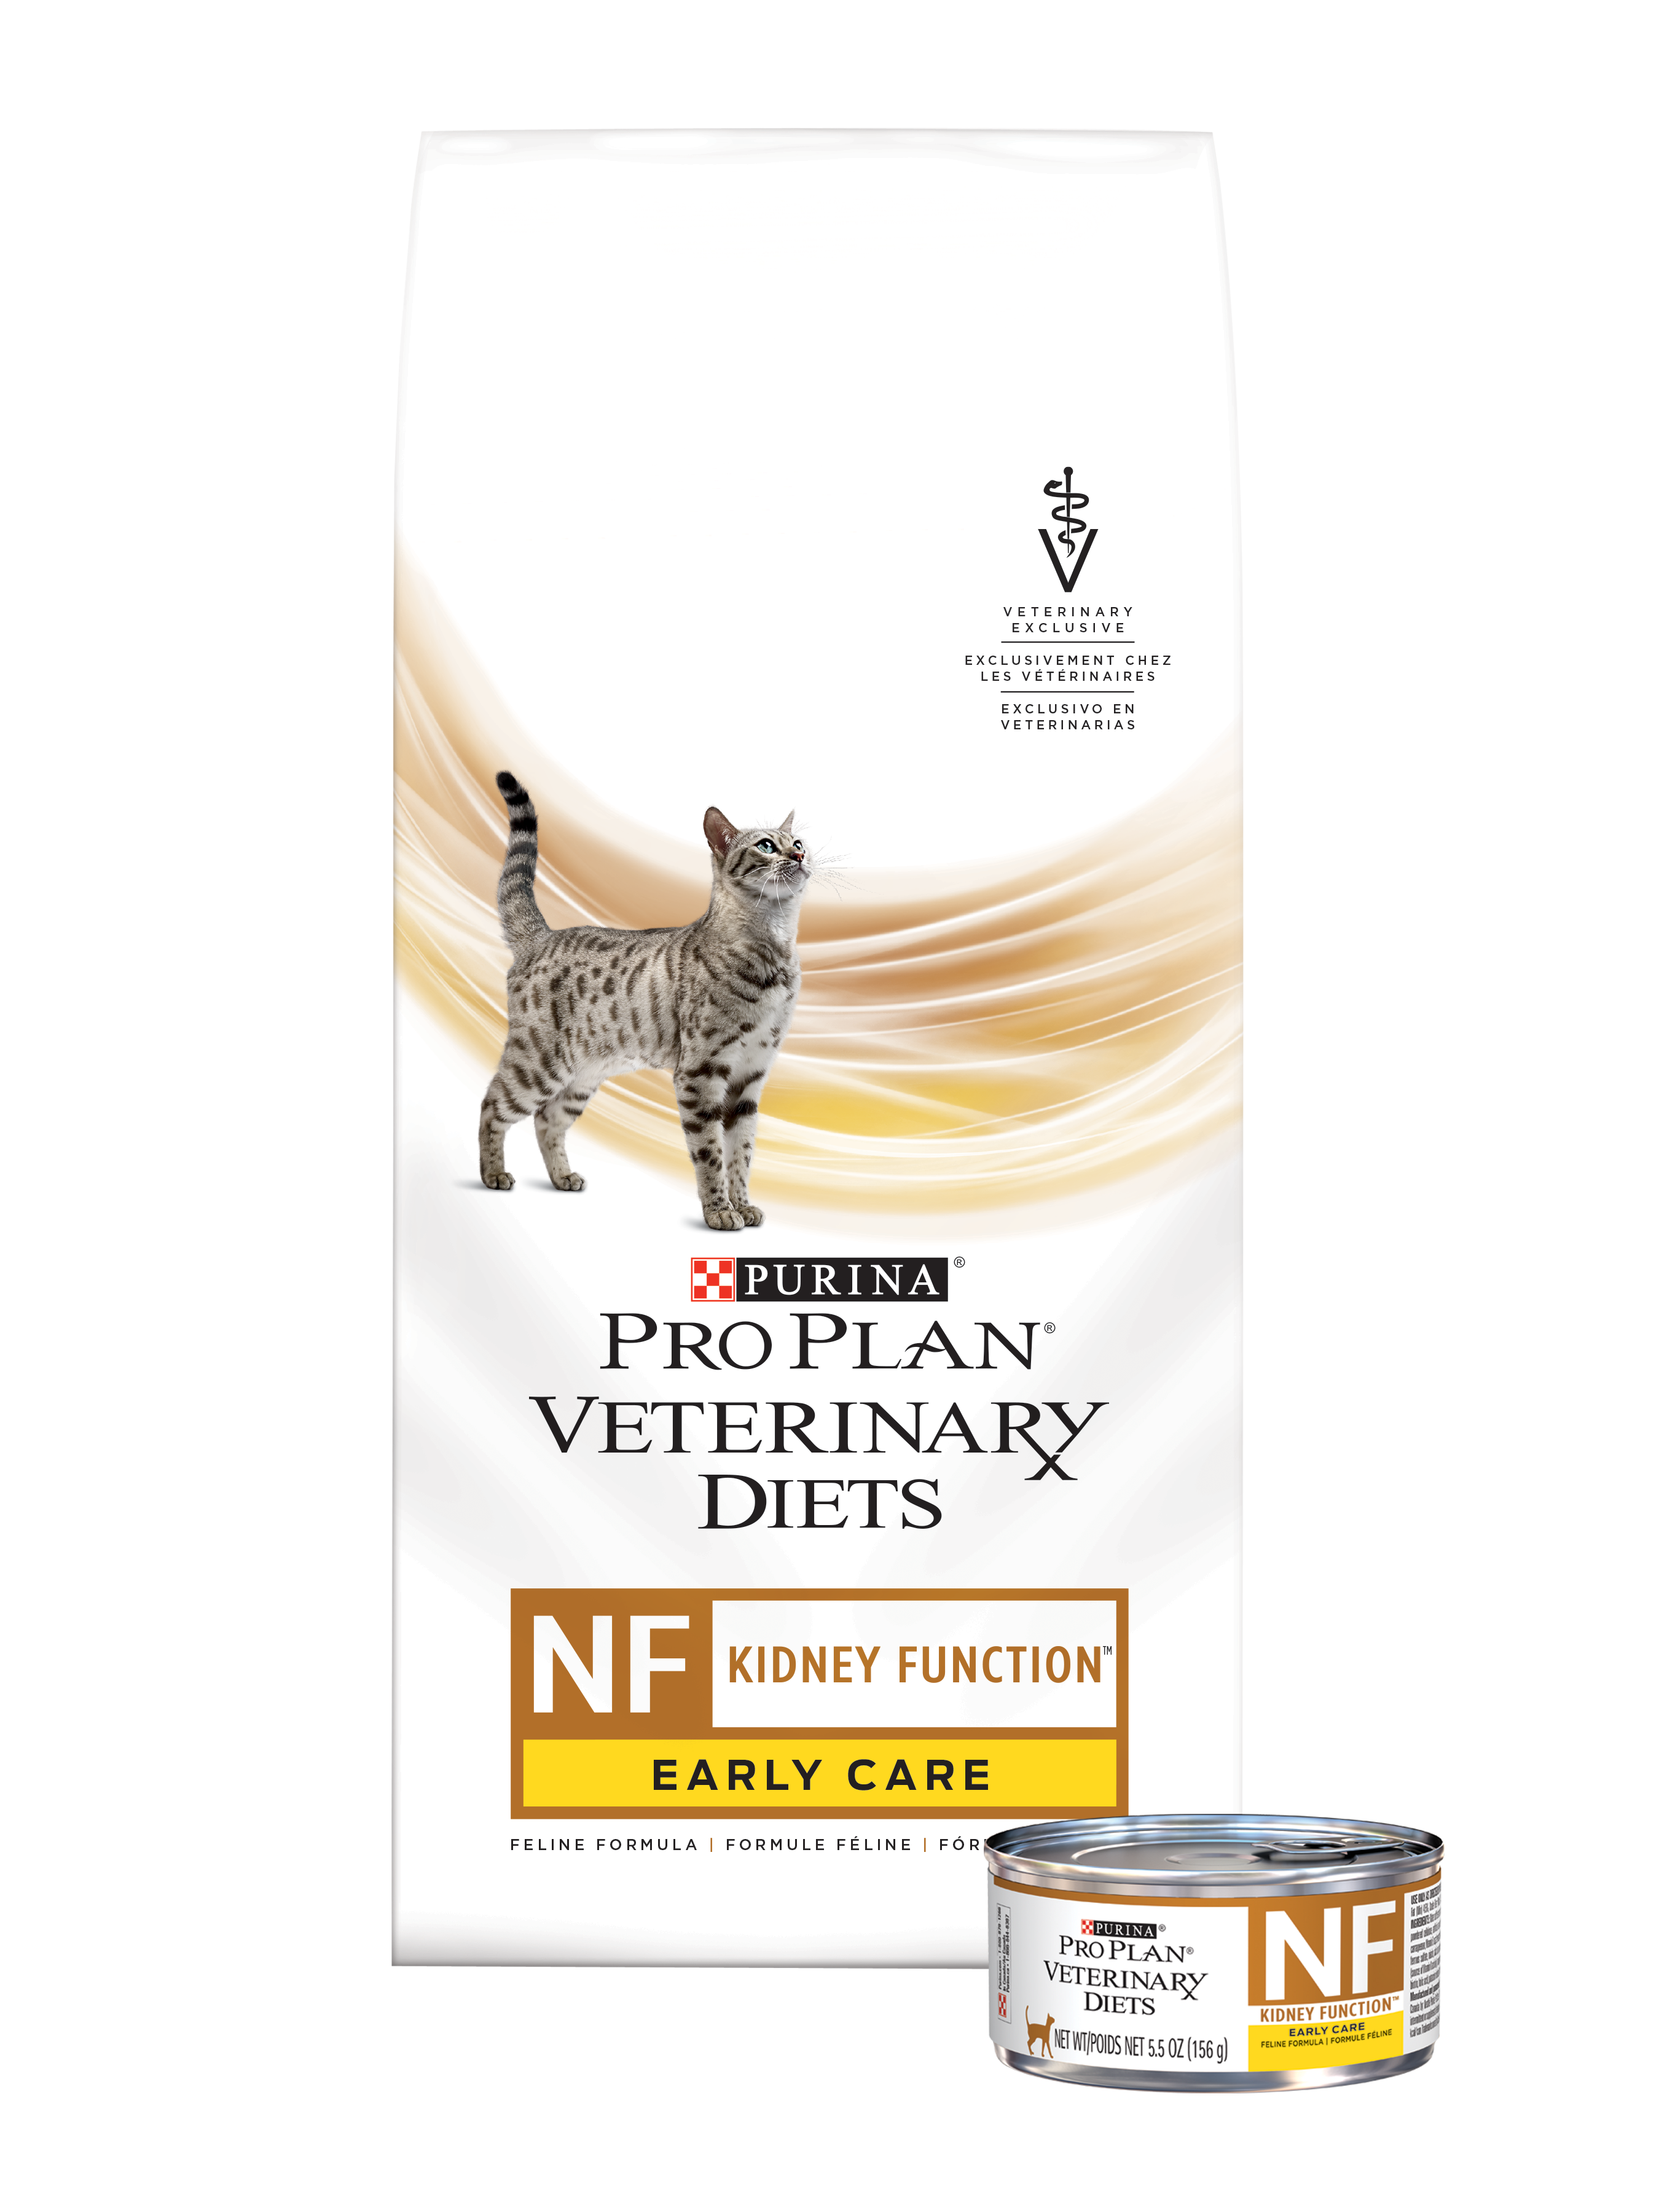 Nf Kidney Function Early Stage Cat Pro Plan Veterinary Diets Cat Nutrition Kidney Function